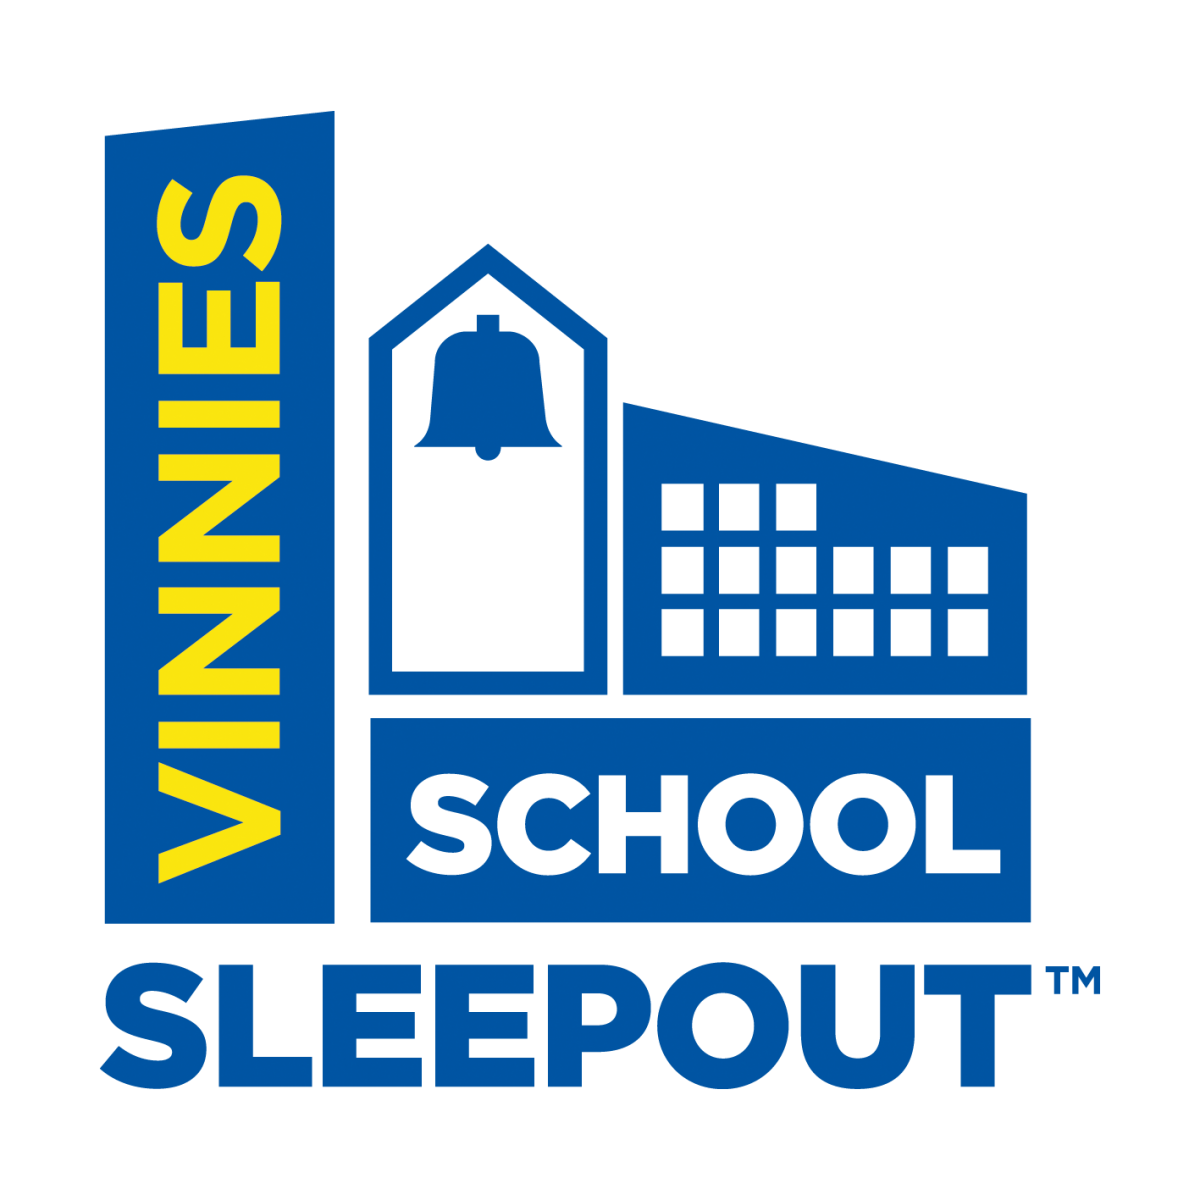 School Sleepout in QLD - St Vincent de Paul Society - Good Works